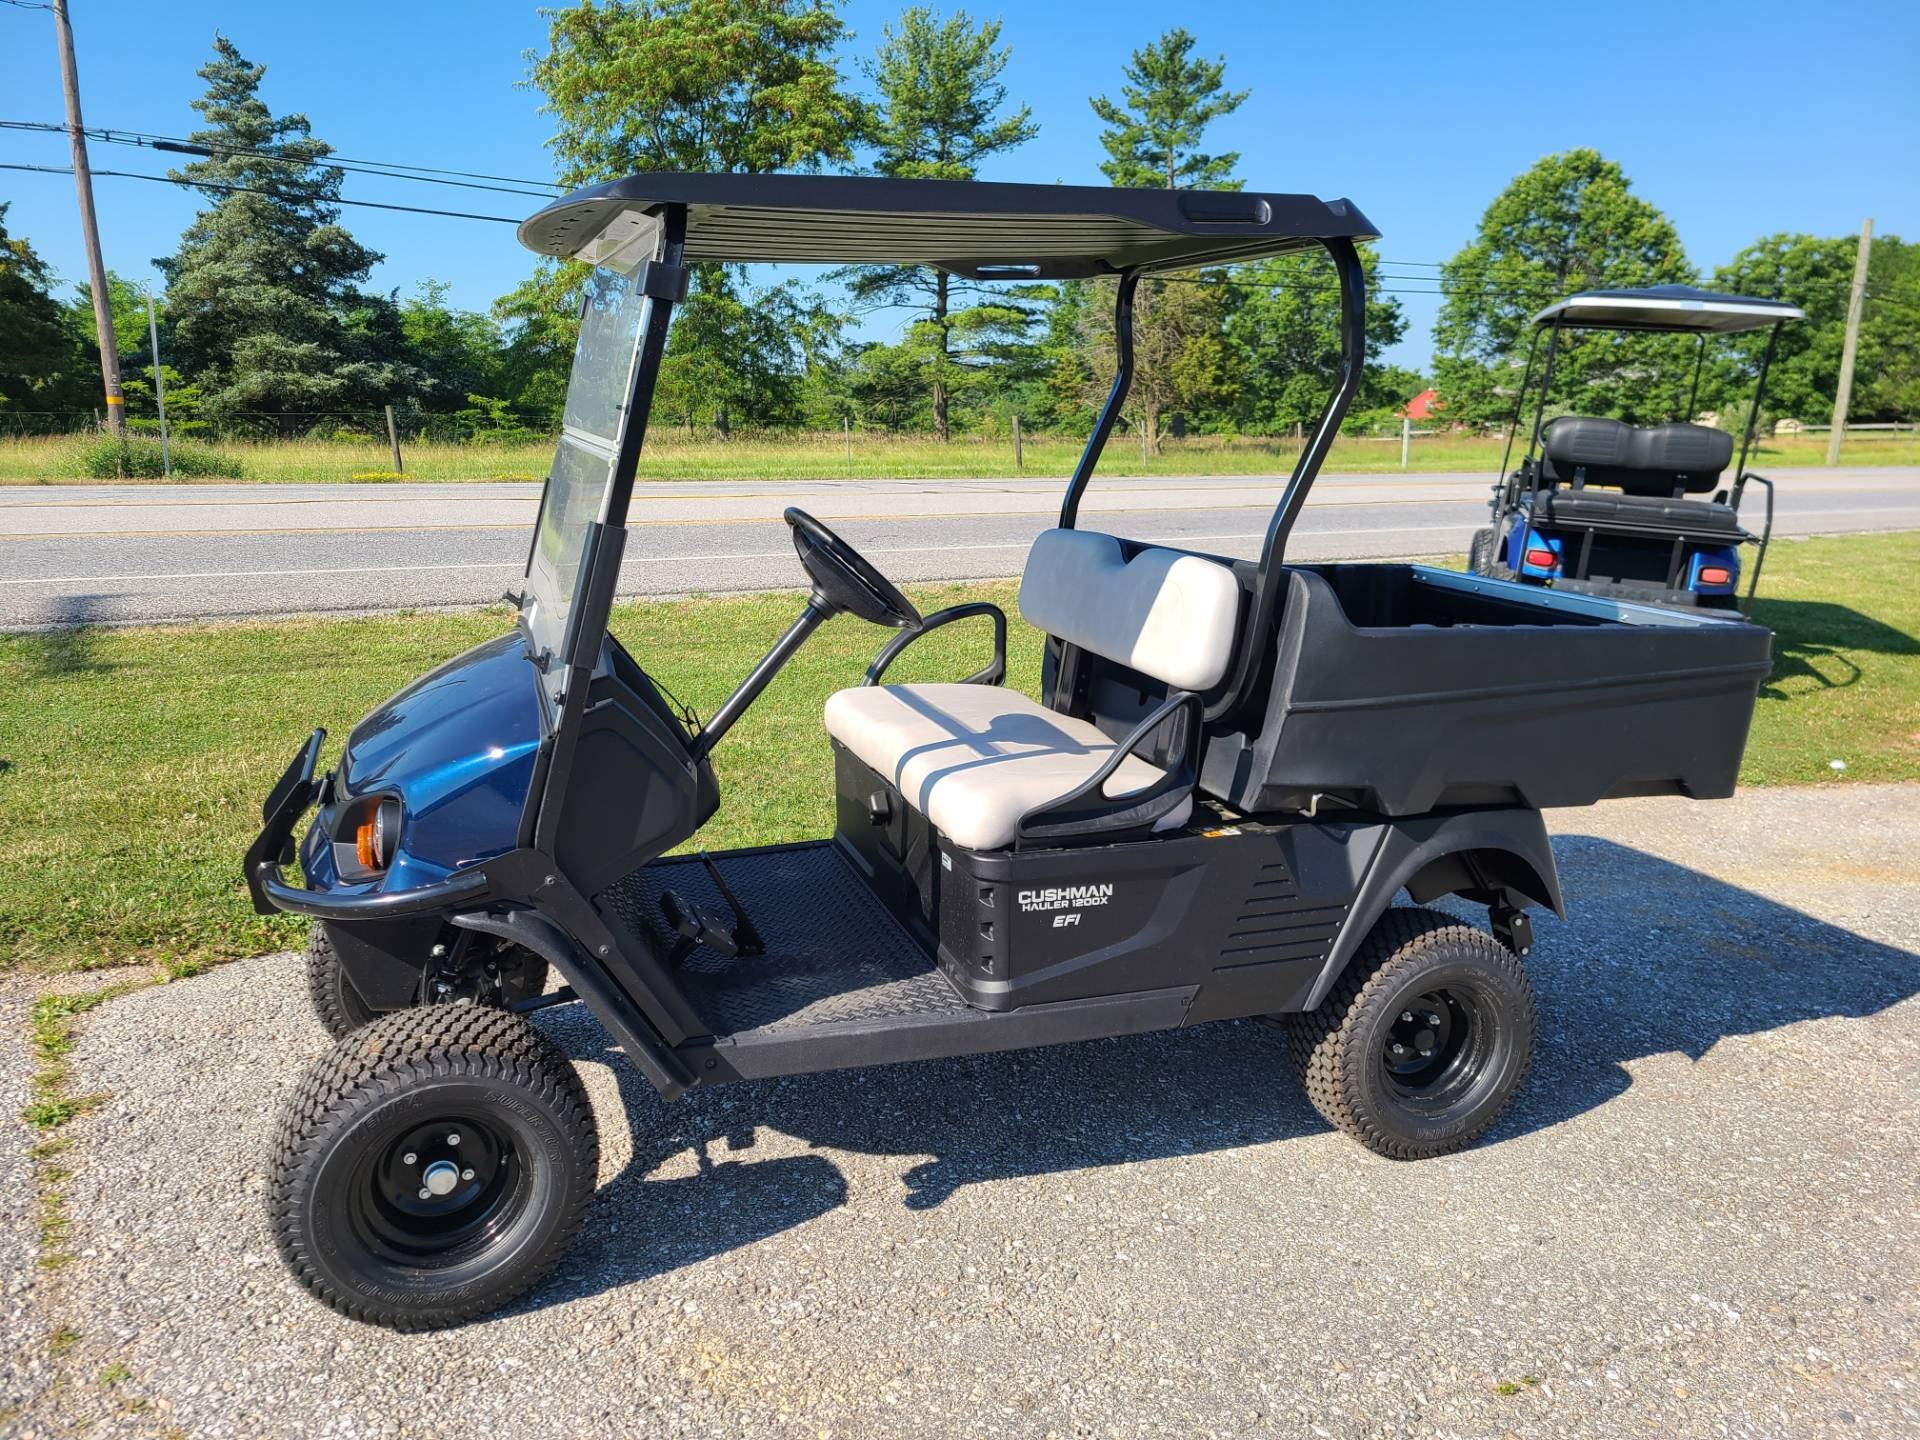 2020 Cushman 1200X GAS EFI in New Oxford, Pennsylvania - Photo 2